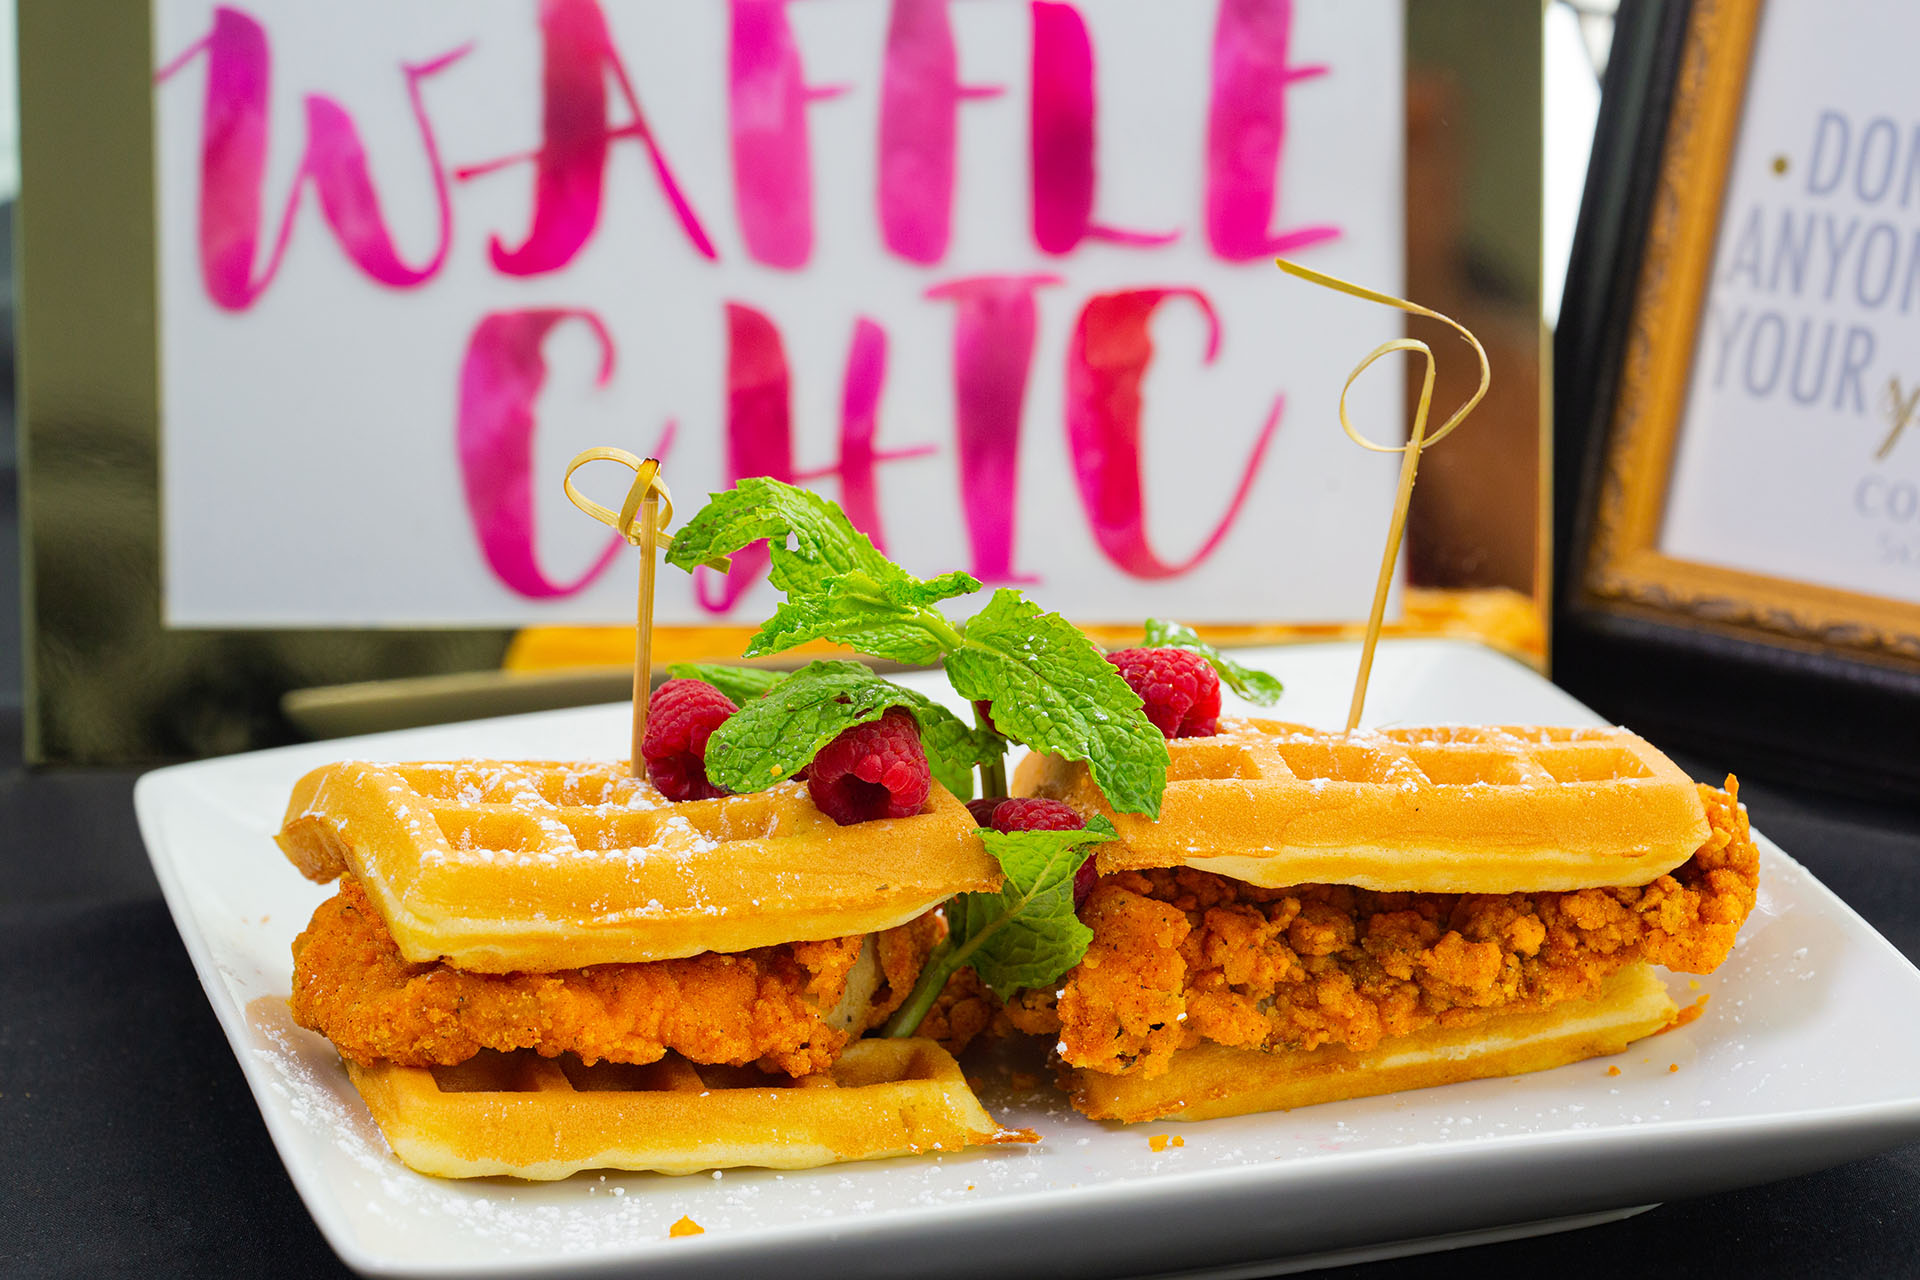 The Waffle Chic Inc.